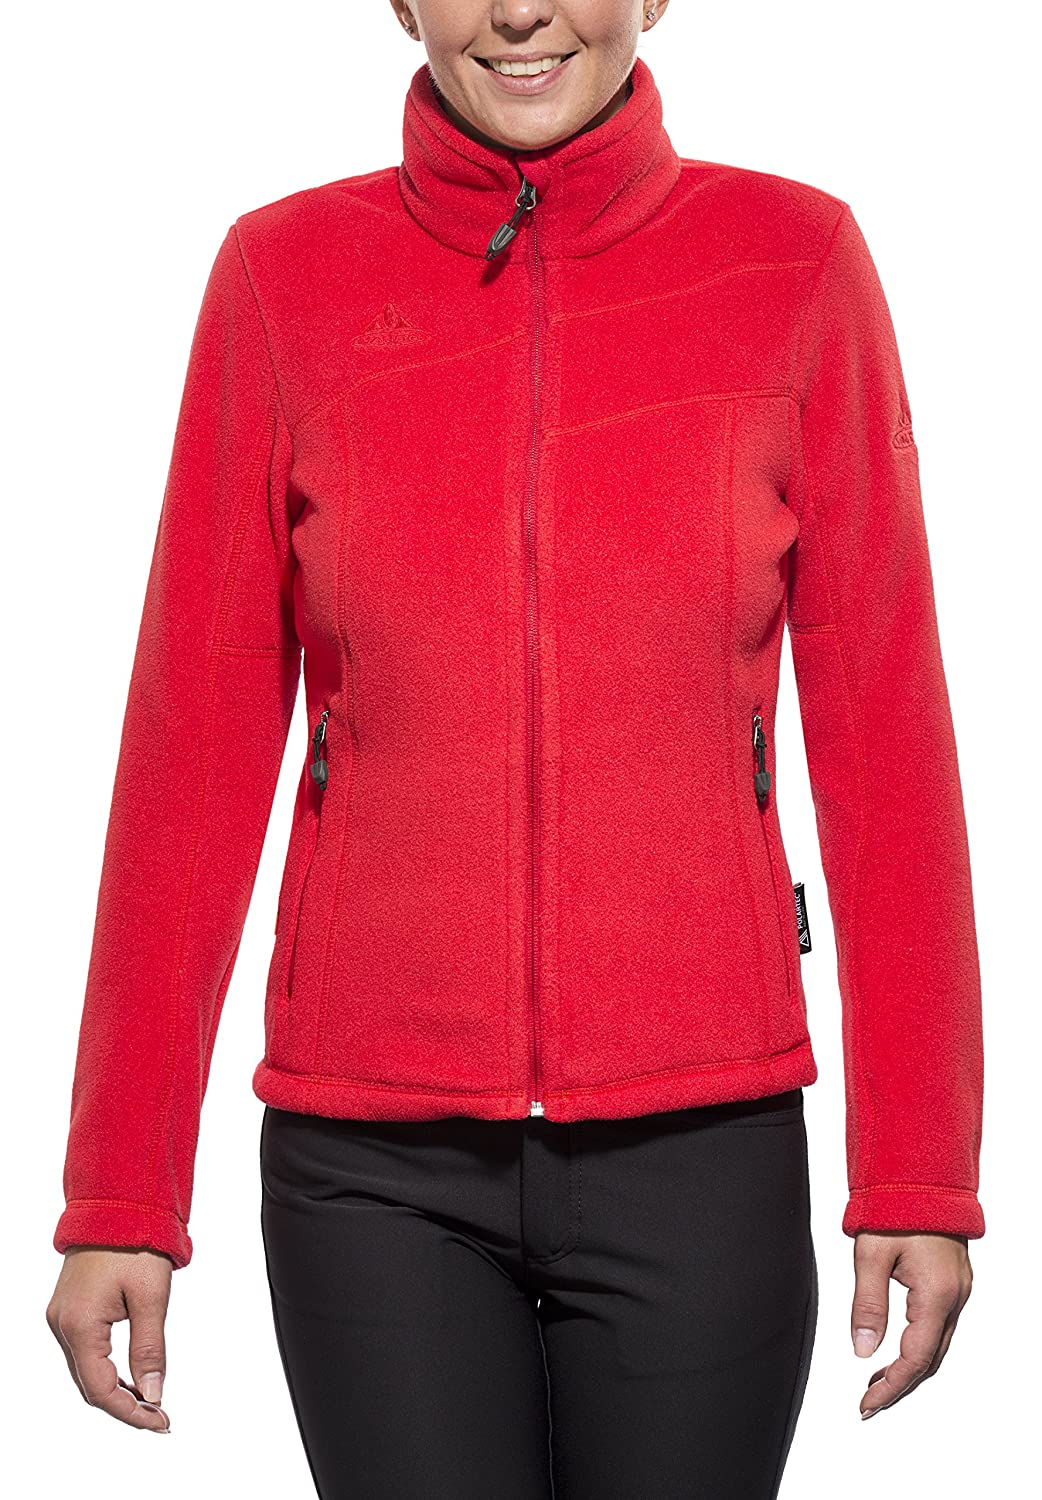 Vaude fleecejacke Women's Arosa Jacket V red günstig kaufen